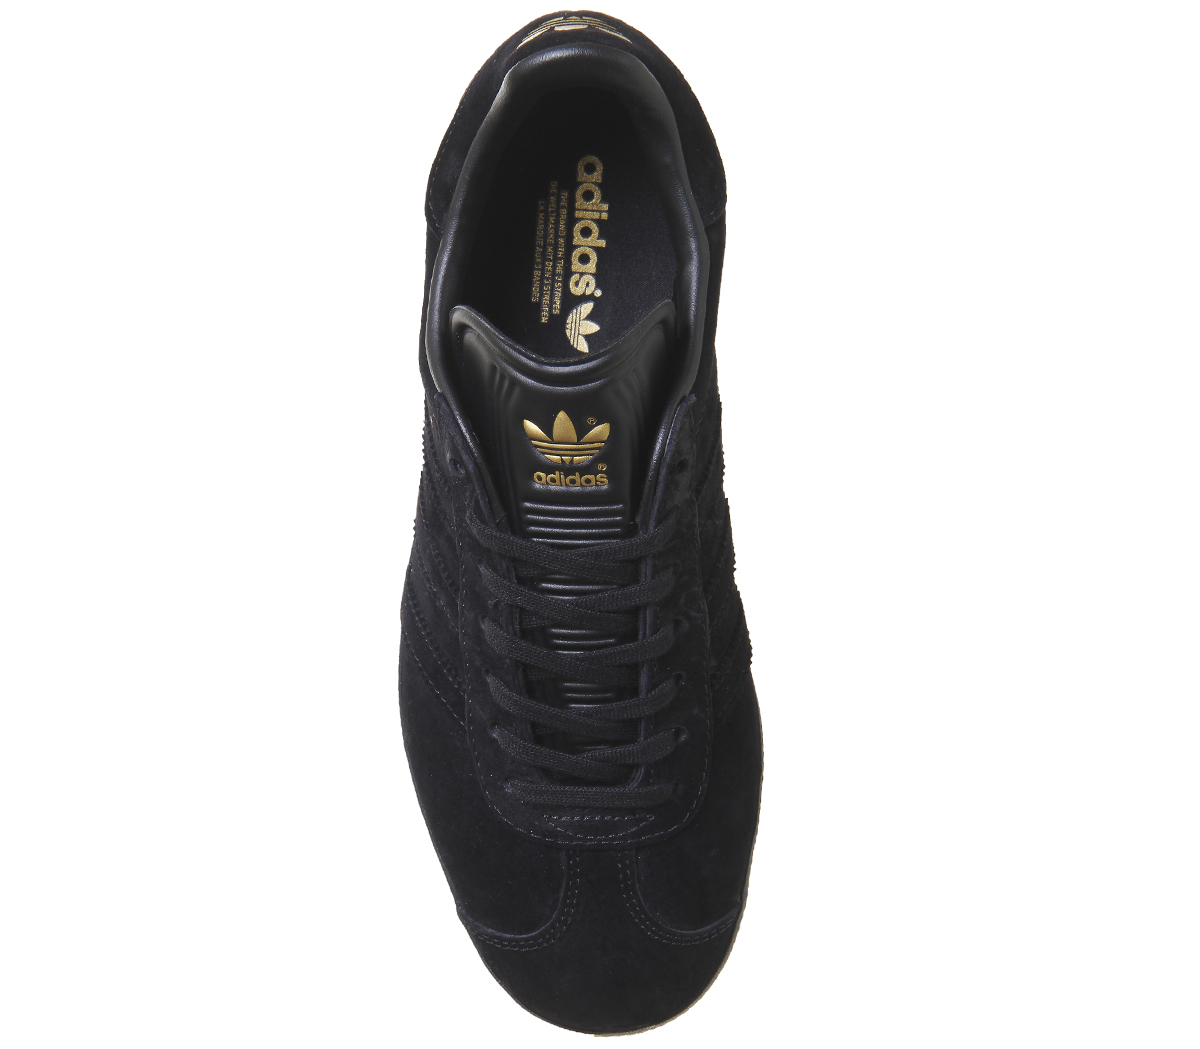 Adidas-Gazelle-Trainers-BLACK-GOLD-EXCLUSIVE-Trainers-Shoes